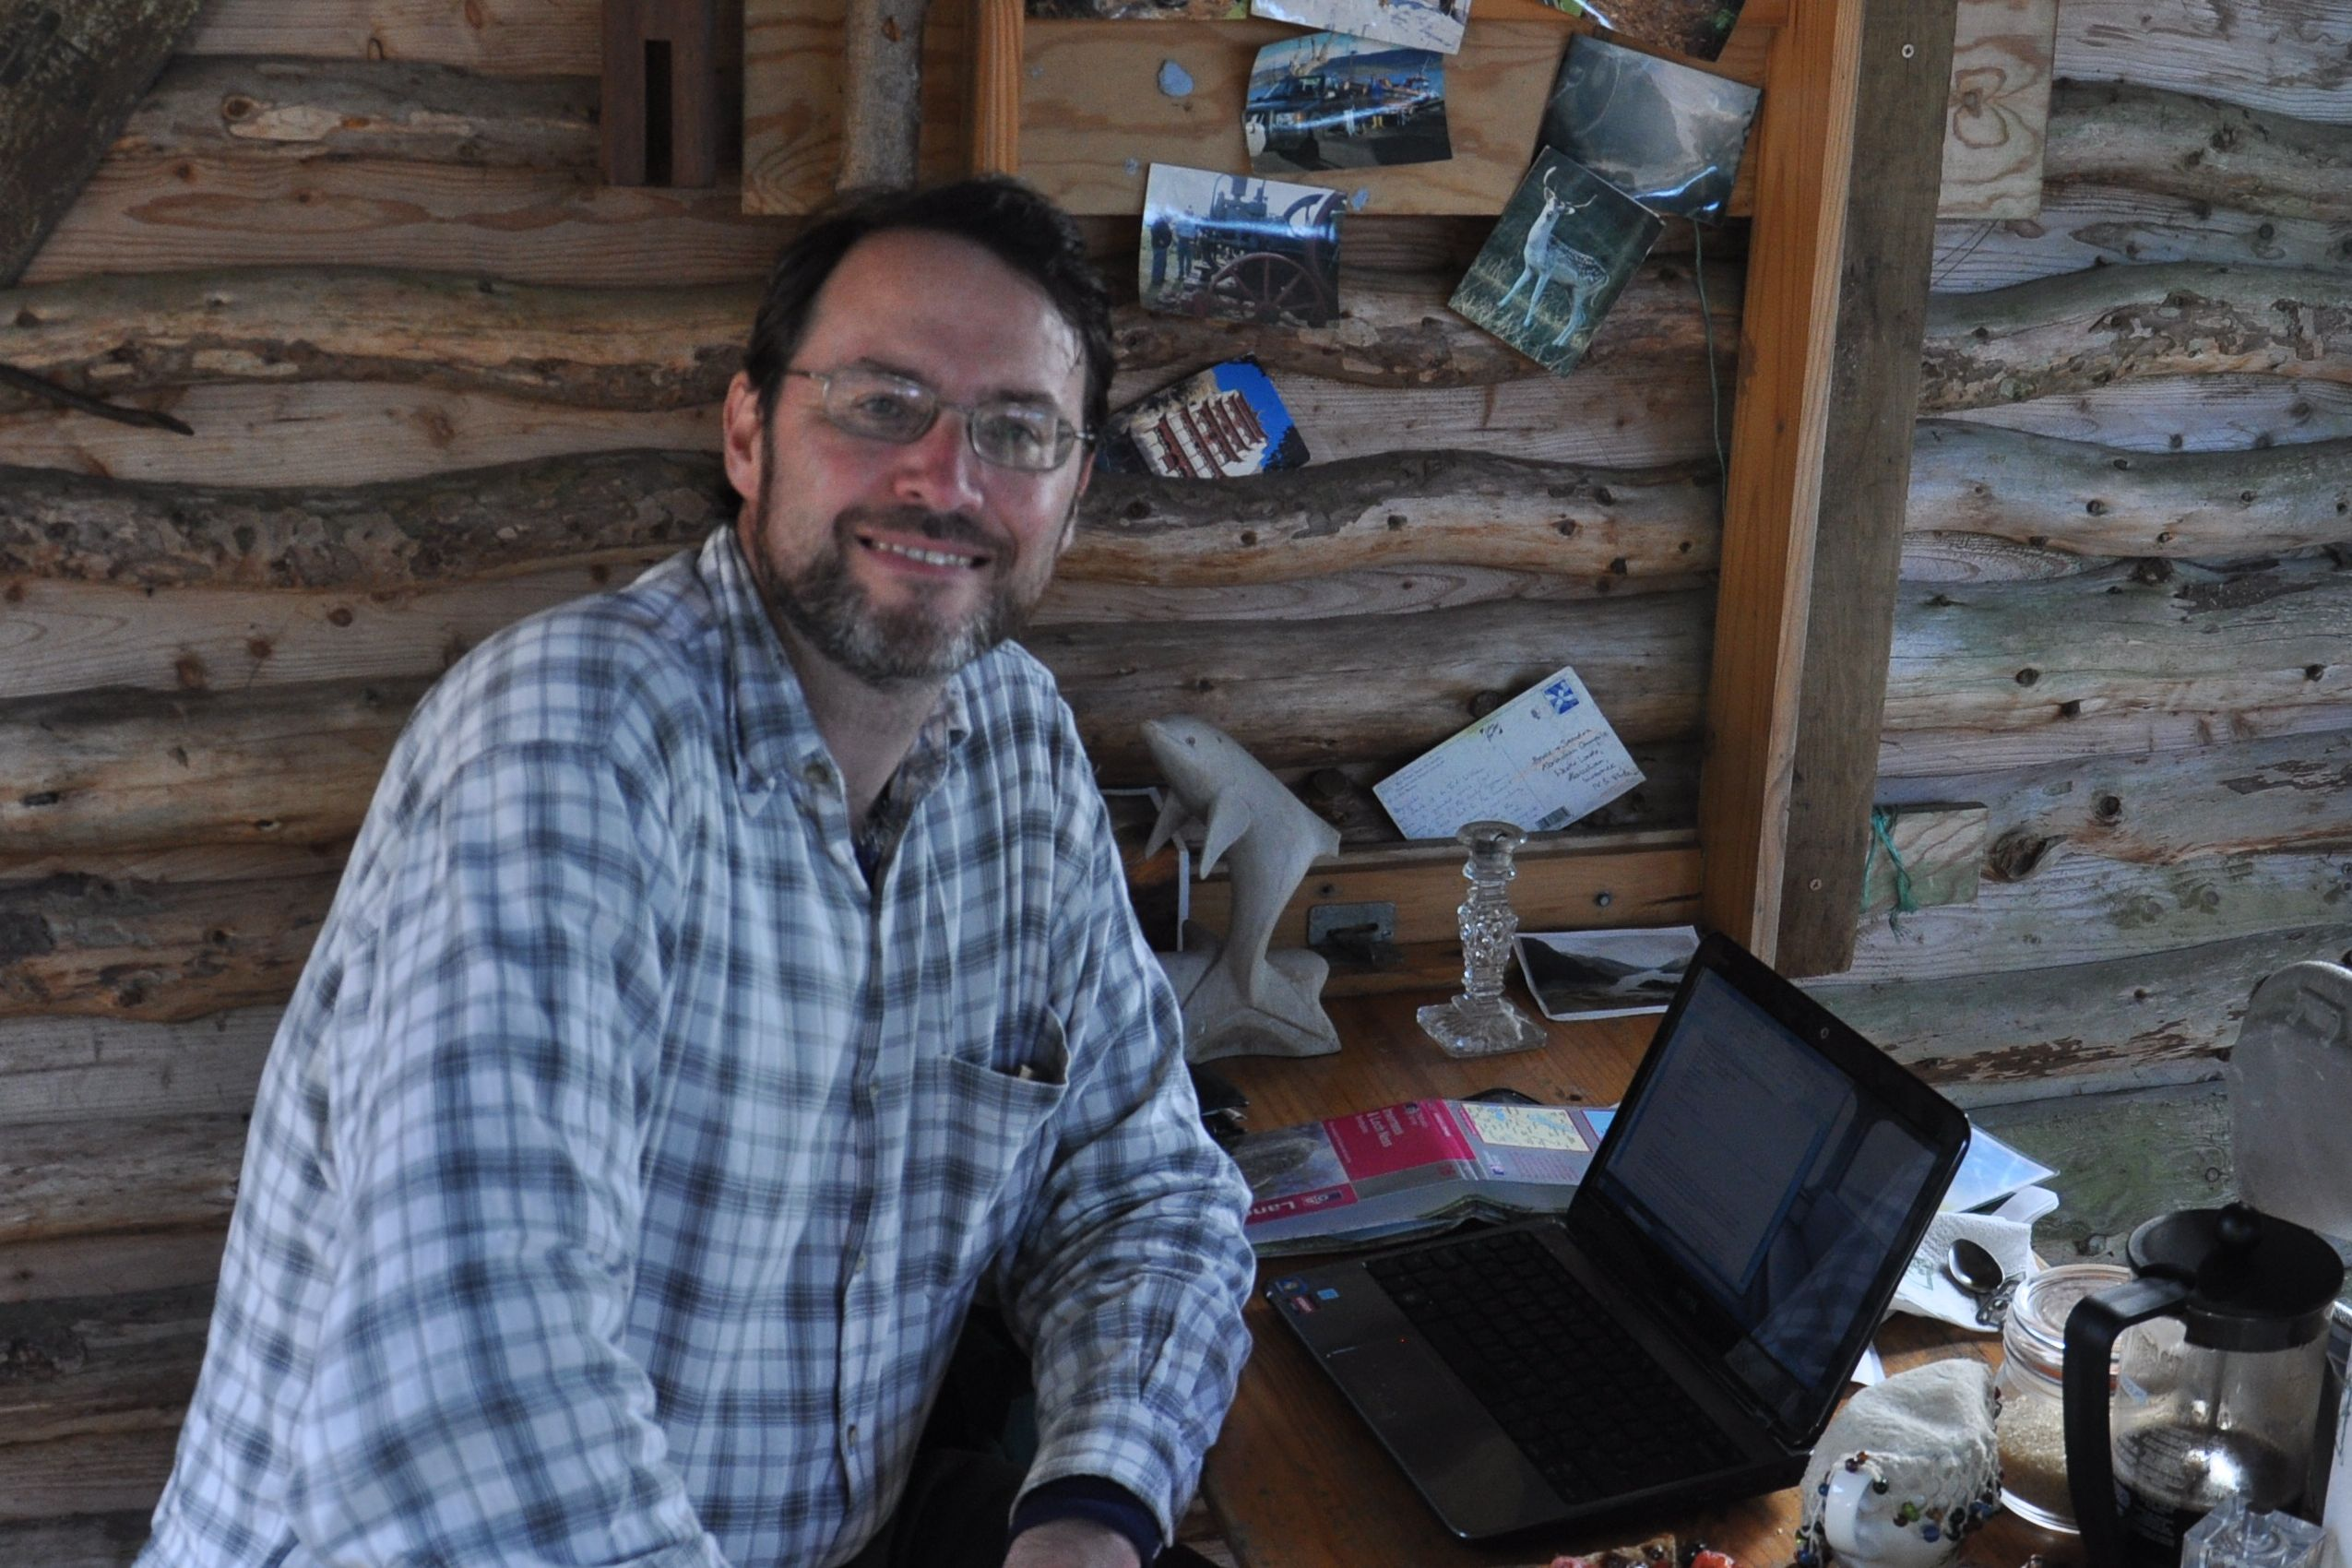 A picture of me and my laptop, blogging at the Abriachan Campsite and Cafe